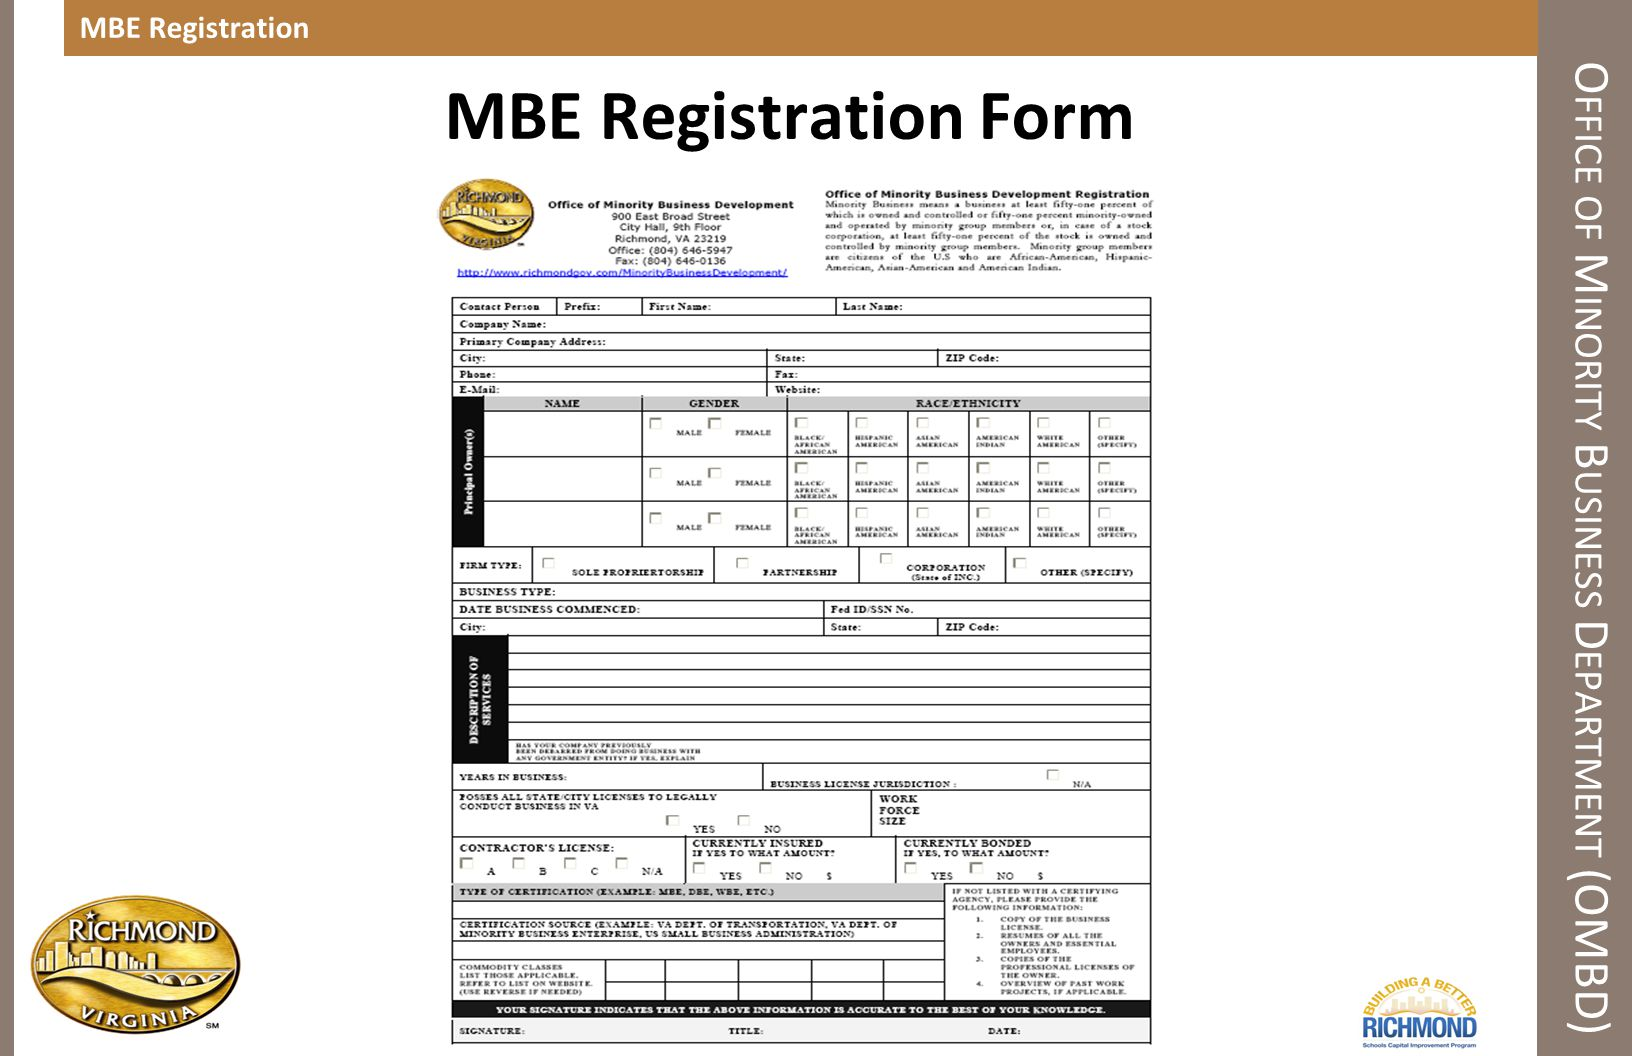 MBE Registration O FFICE OF M INORITY B USINESS D EPARTMENT (OMBD) MBE Registration Form